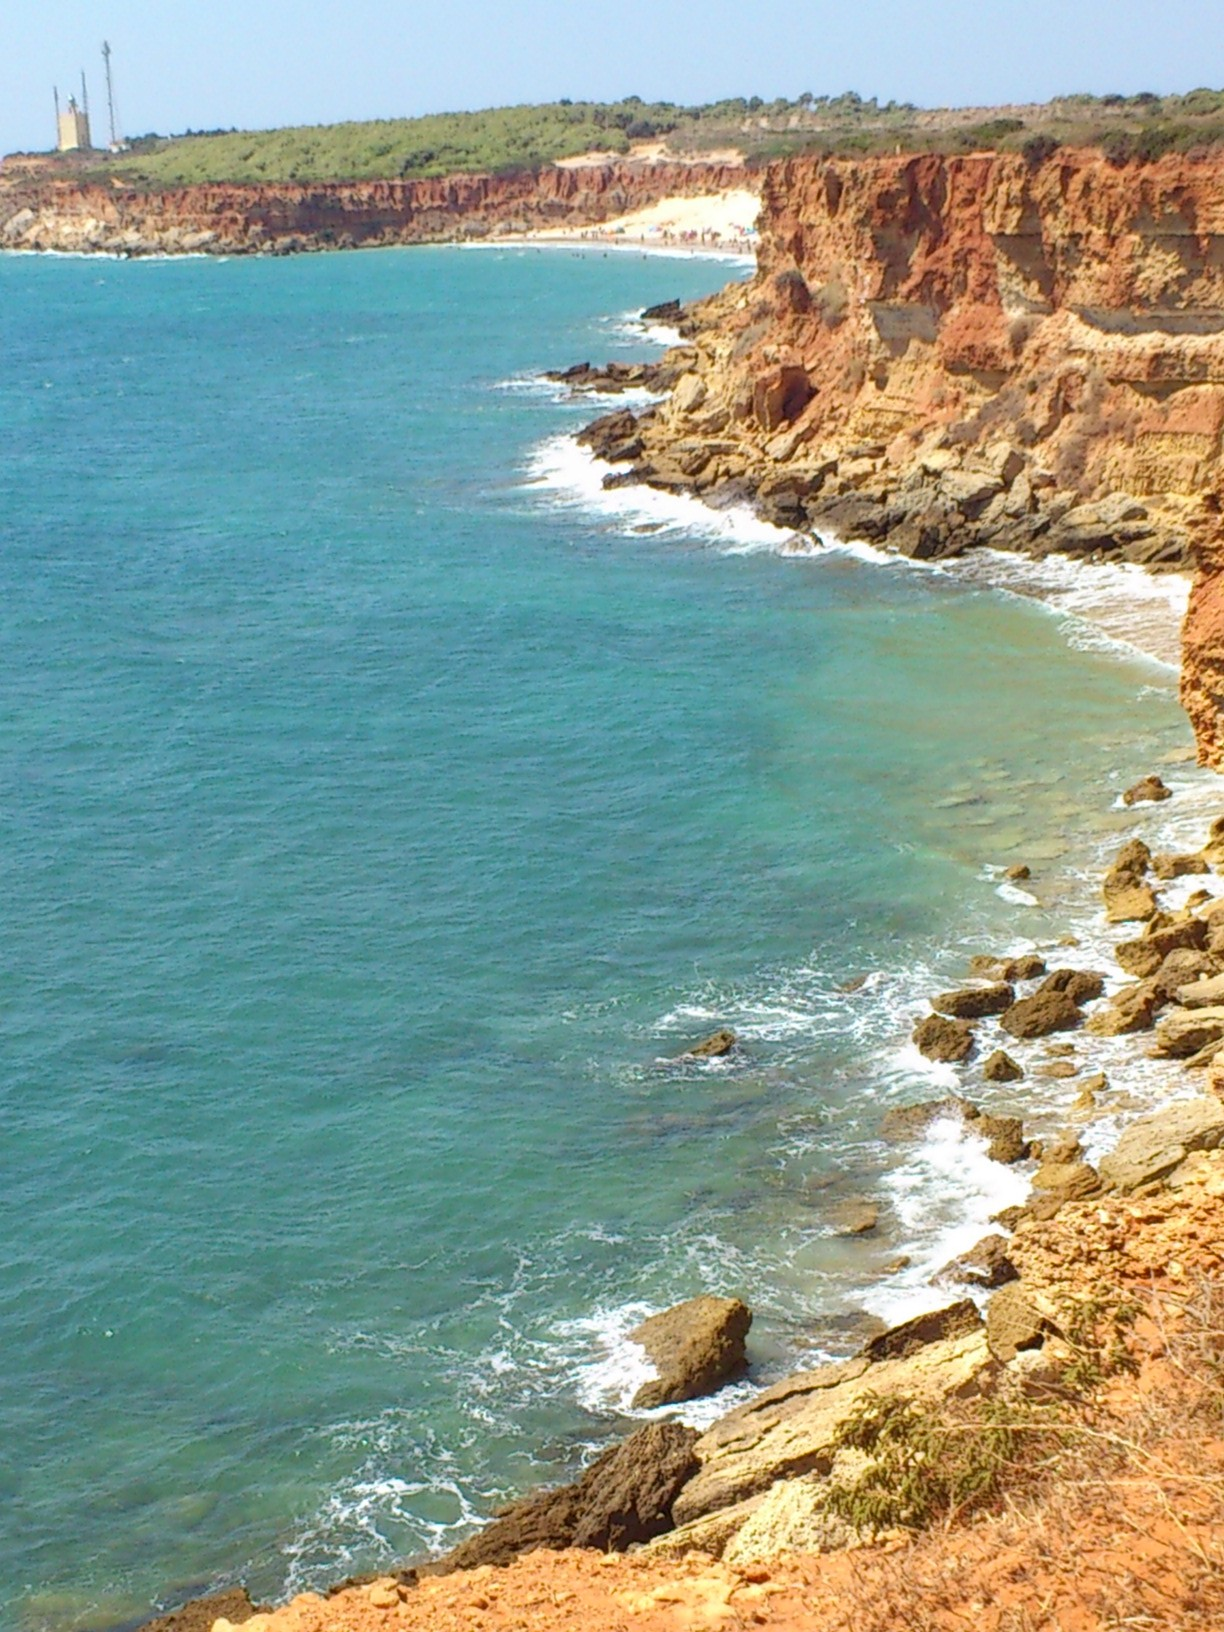 Cala Camacho — the perfect deserted cove, just around the corner from a crowded public beach...